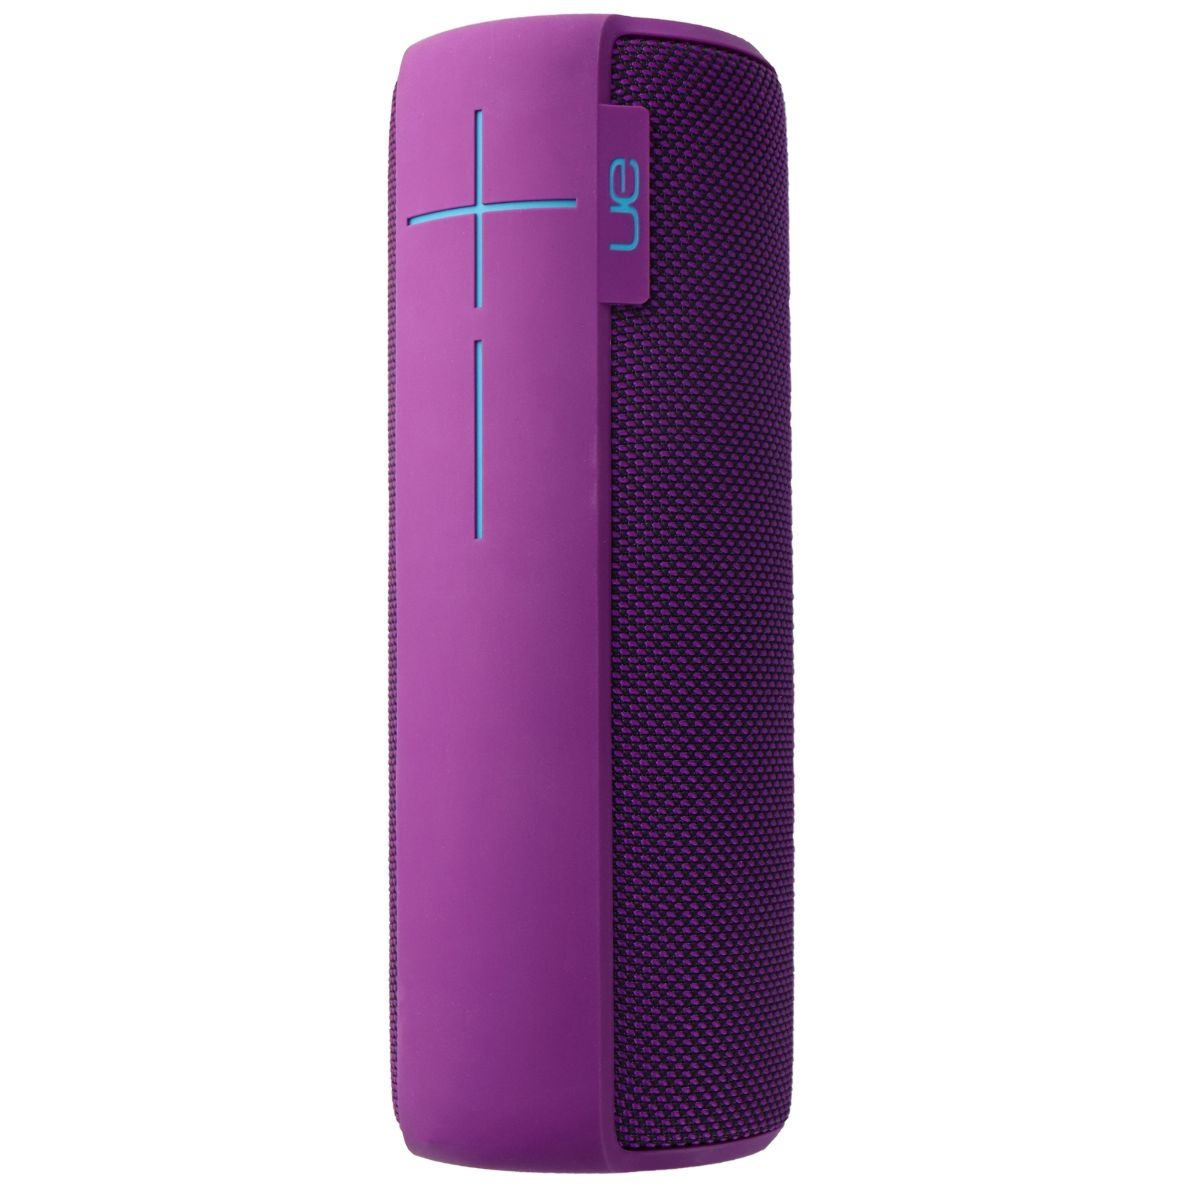 UE MEGABOOM - Portable Waterproof and Shockproof Bluetooth Speaker - Plum